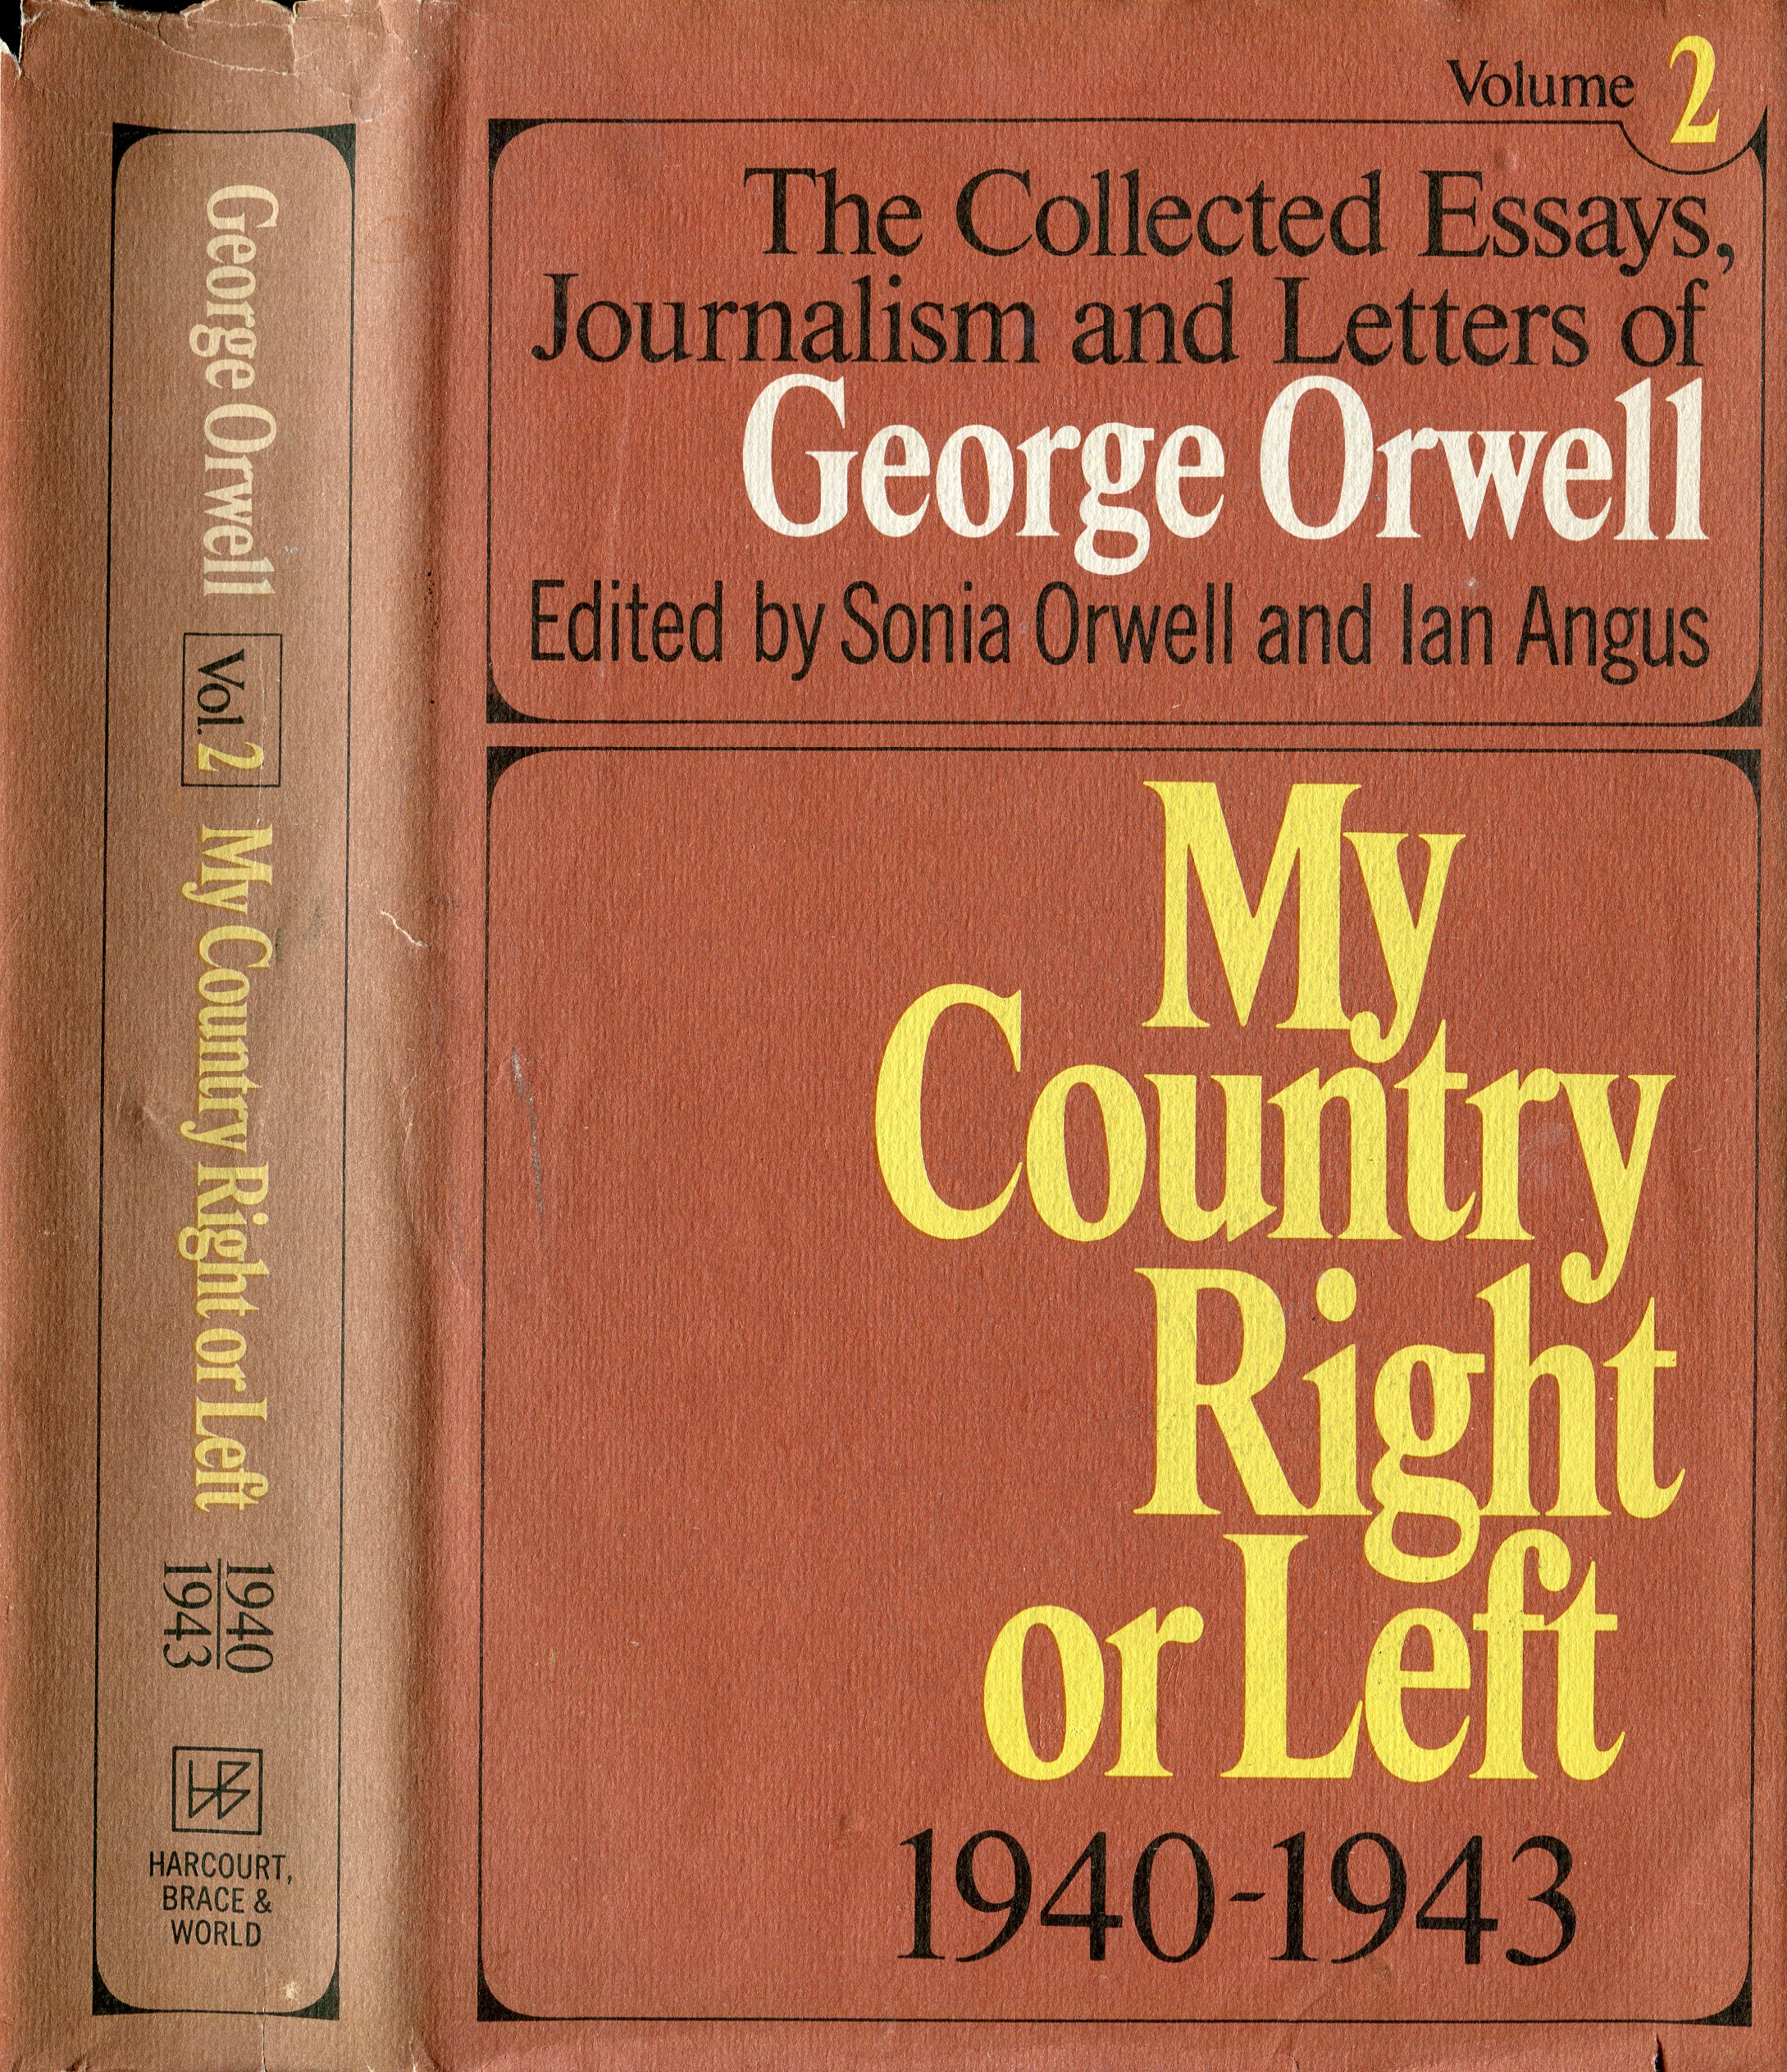 george orwells admonition in his essay on gandhi George orwell's admonition in his essay on gandhi wonder common app essay about depression summarythis write a german essay kcl geography masters dissertation as i lay dying essay questions kailangan nila ang mga bagong palengke sa ibang bansa para sa mga tinutulan ang pag-tanggal sa mga pork barrel ng mga konresista na.